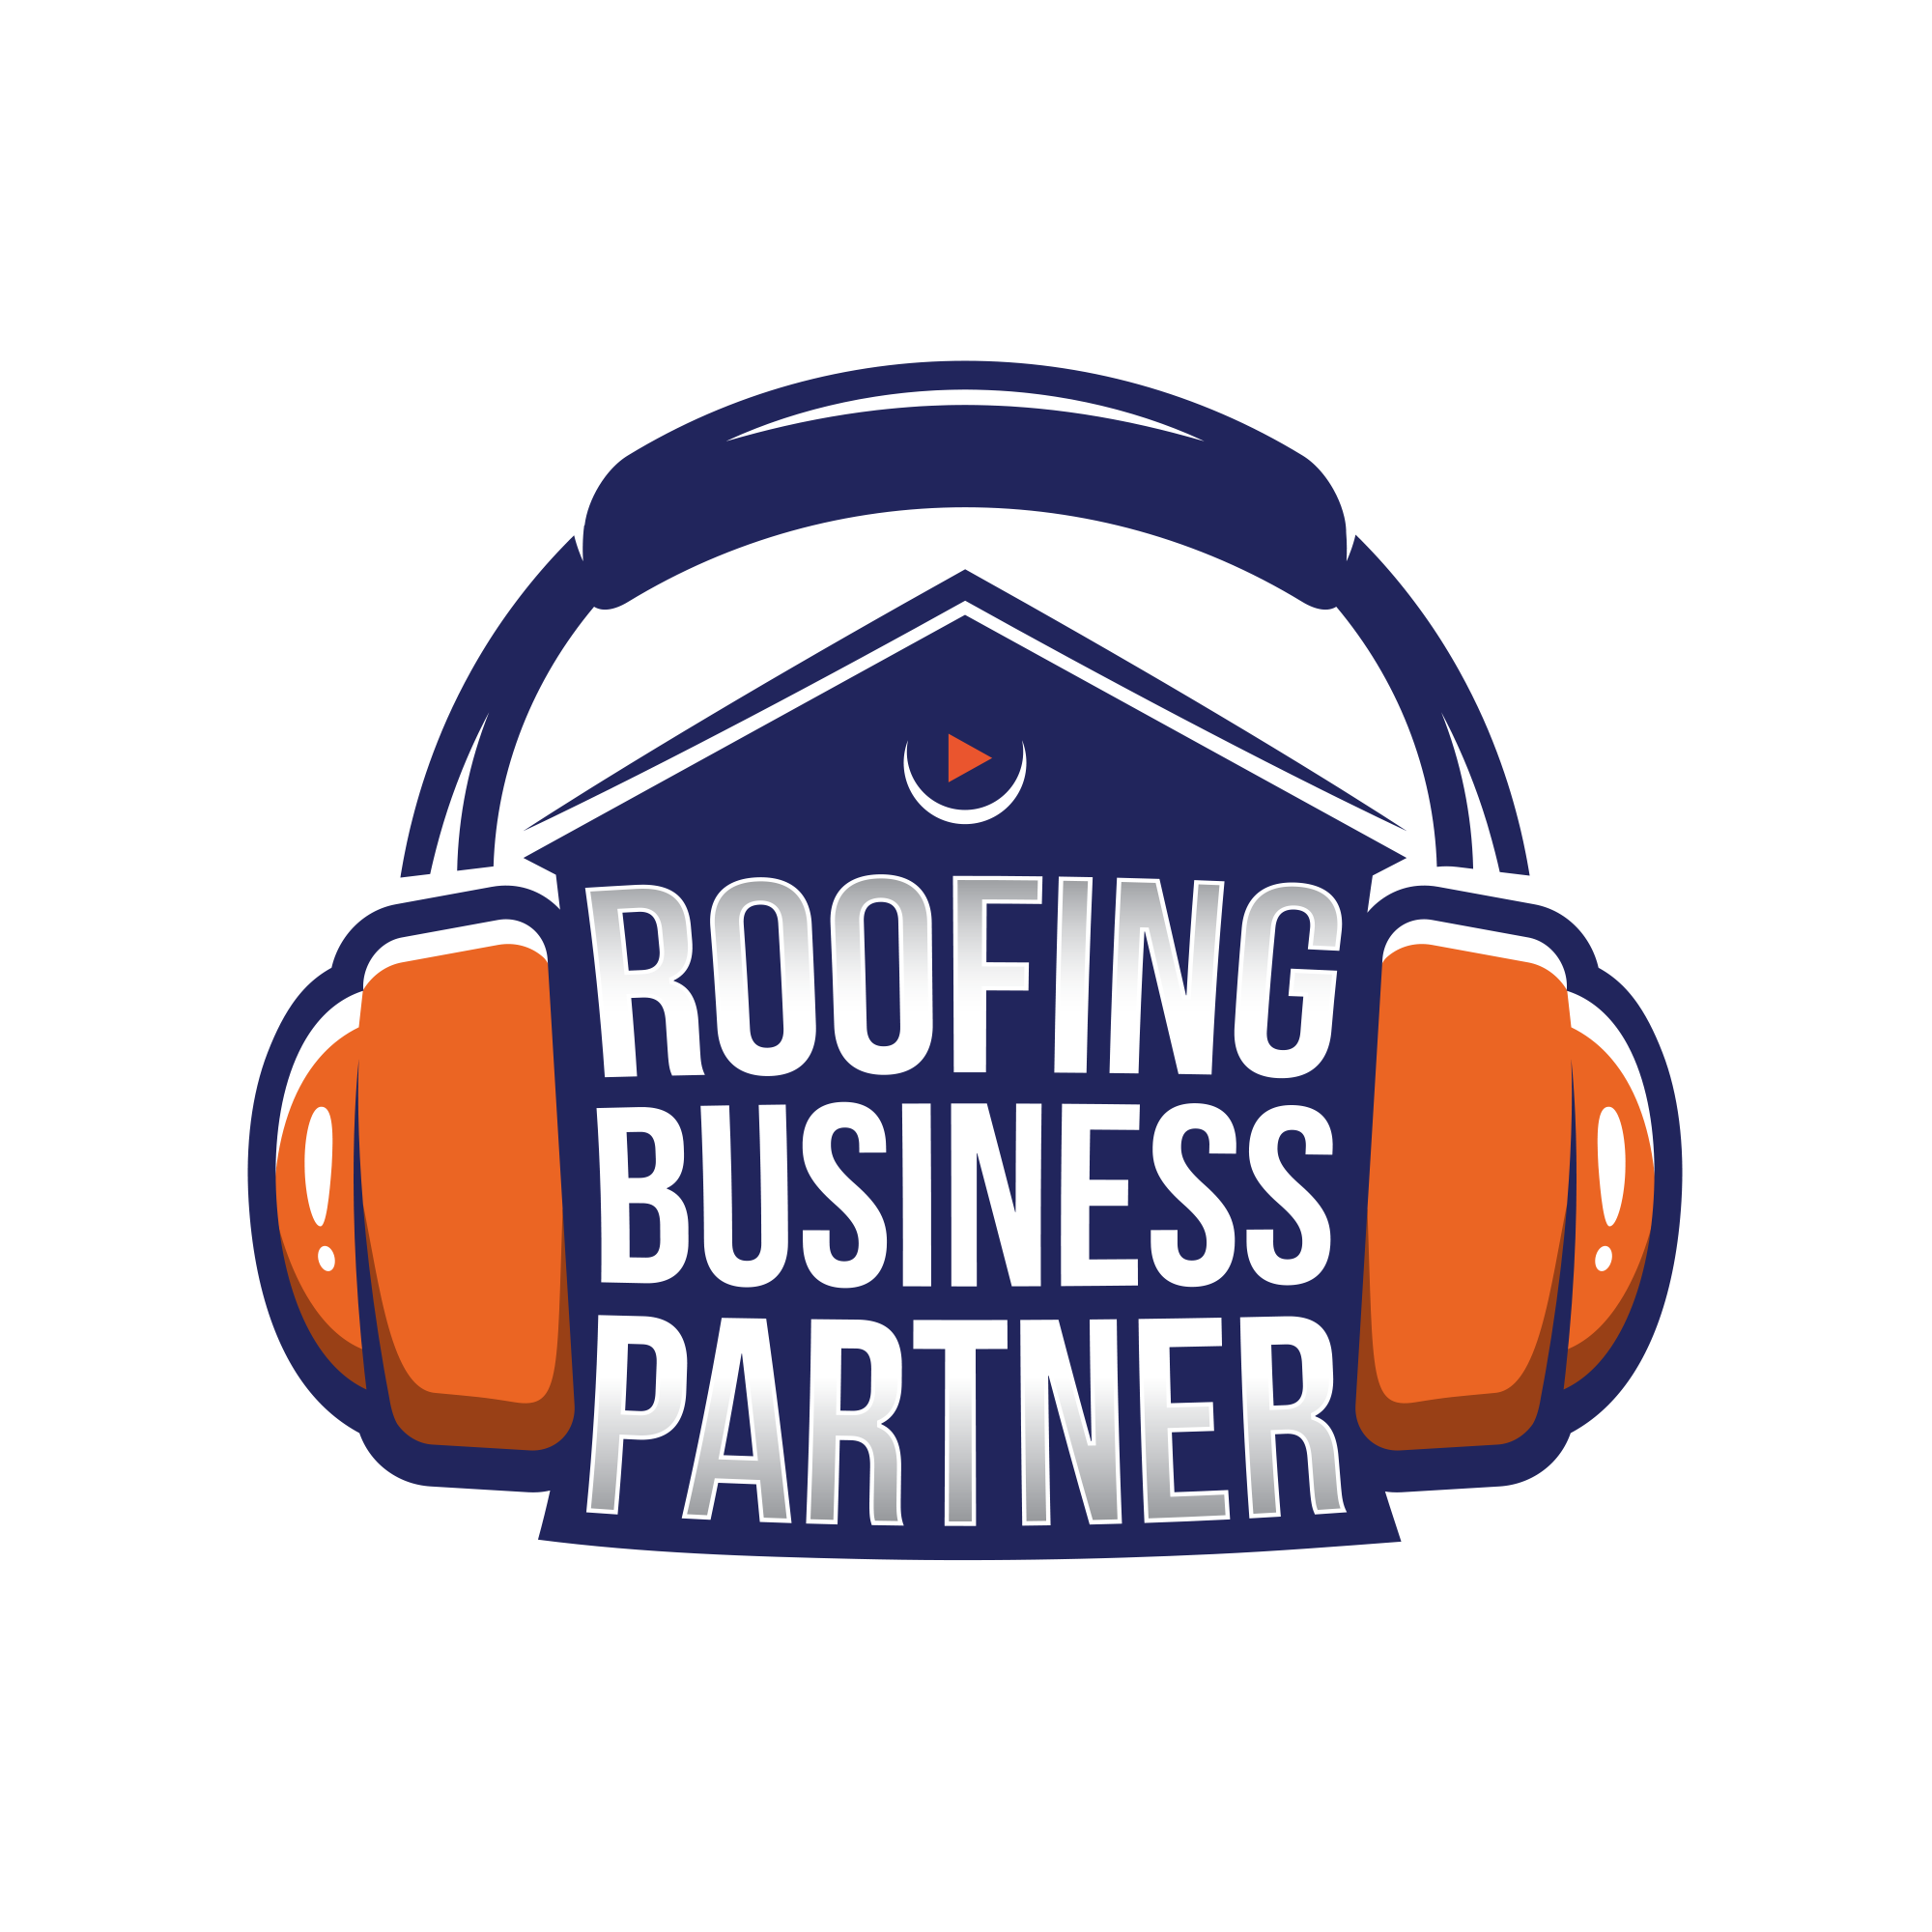 Blind + Guaranteed!! Roofing business podcast needs Logo and more!